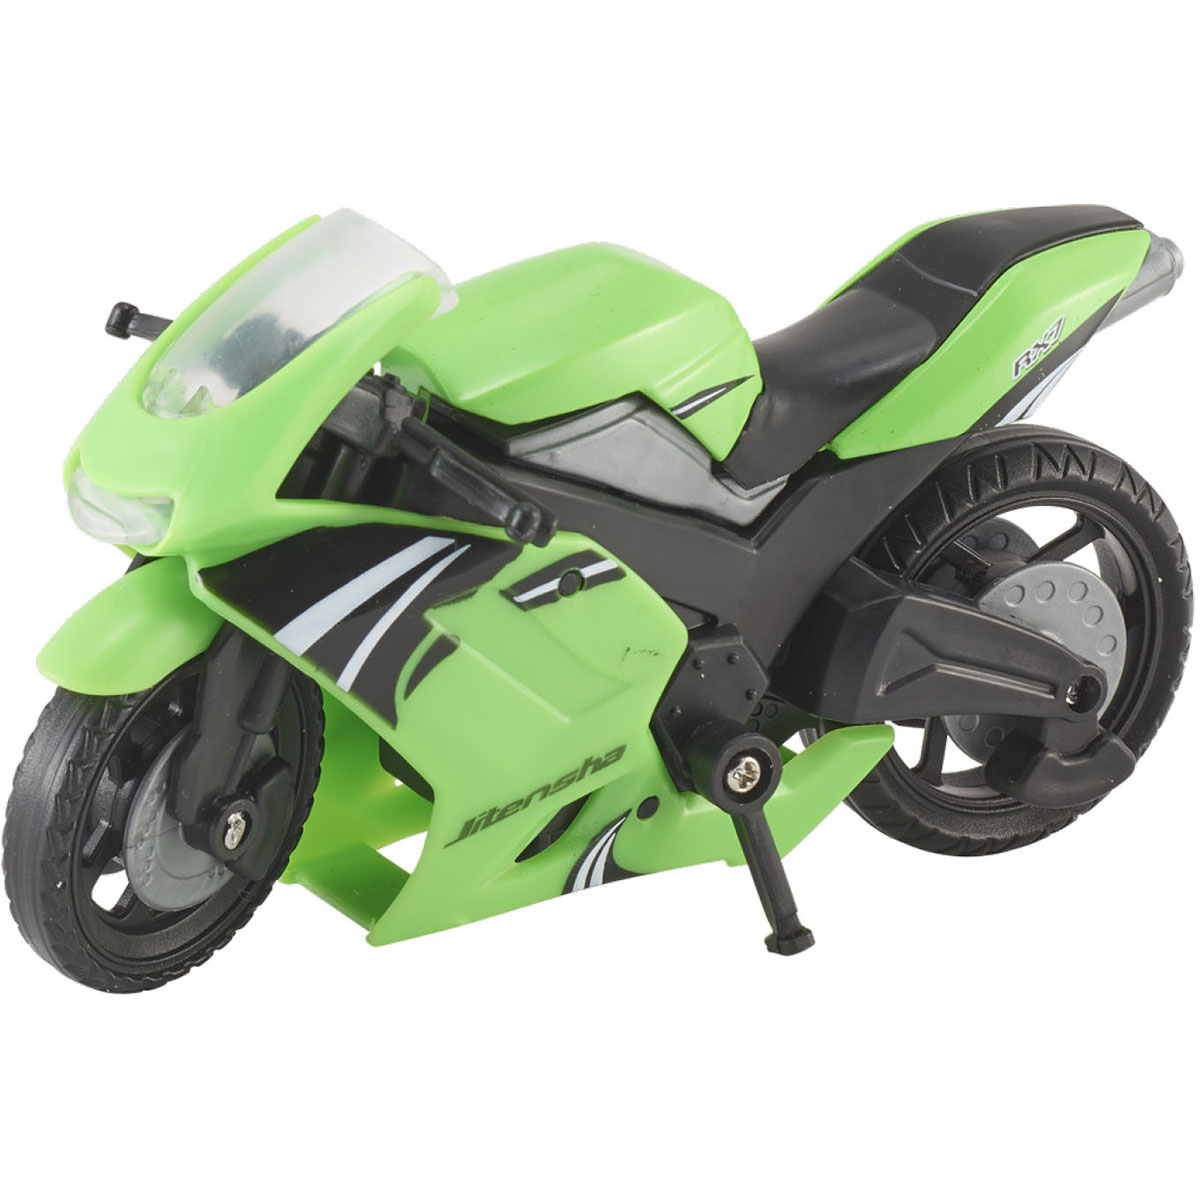 Motocicleta Teamsterz Speed Bike, Verde